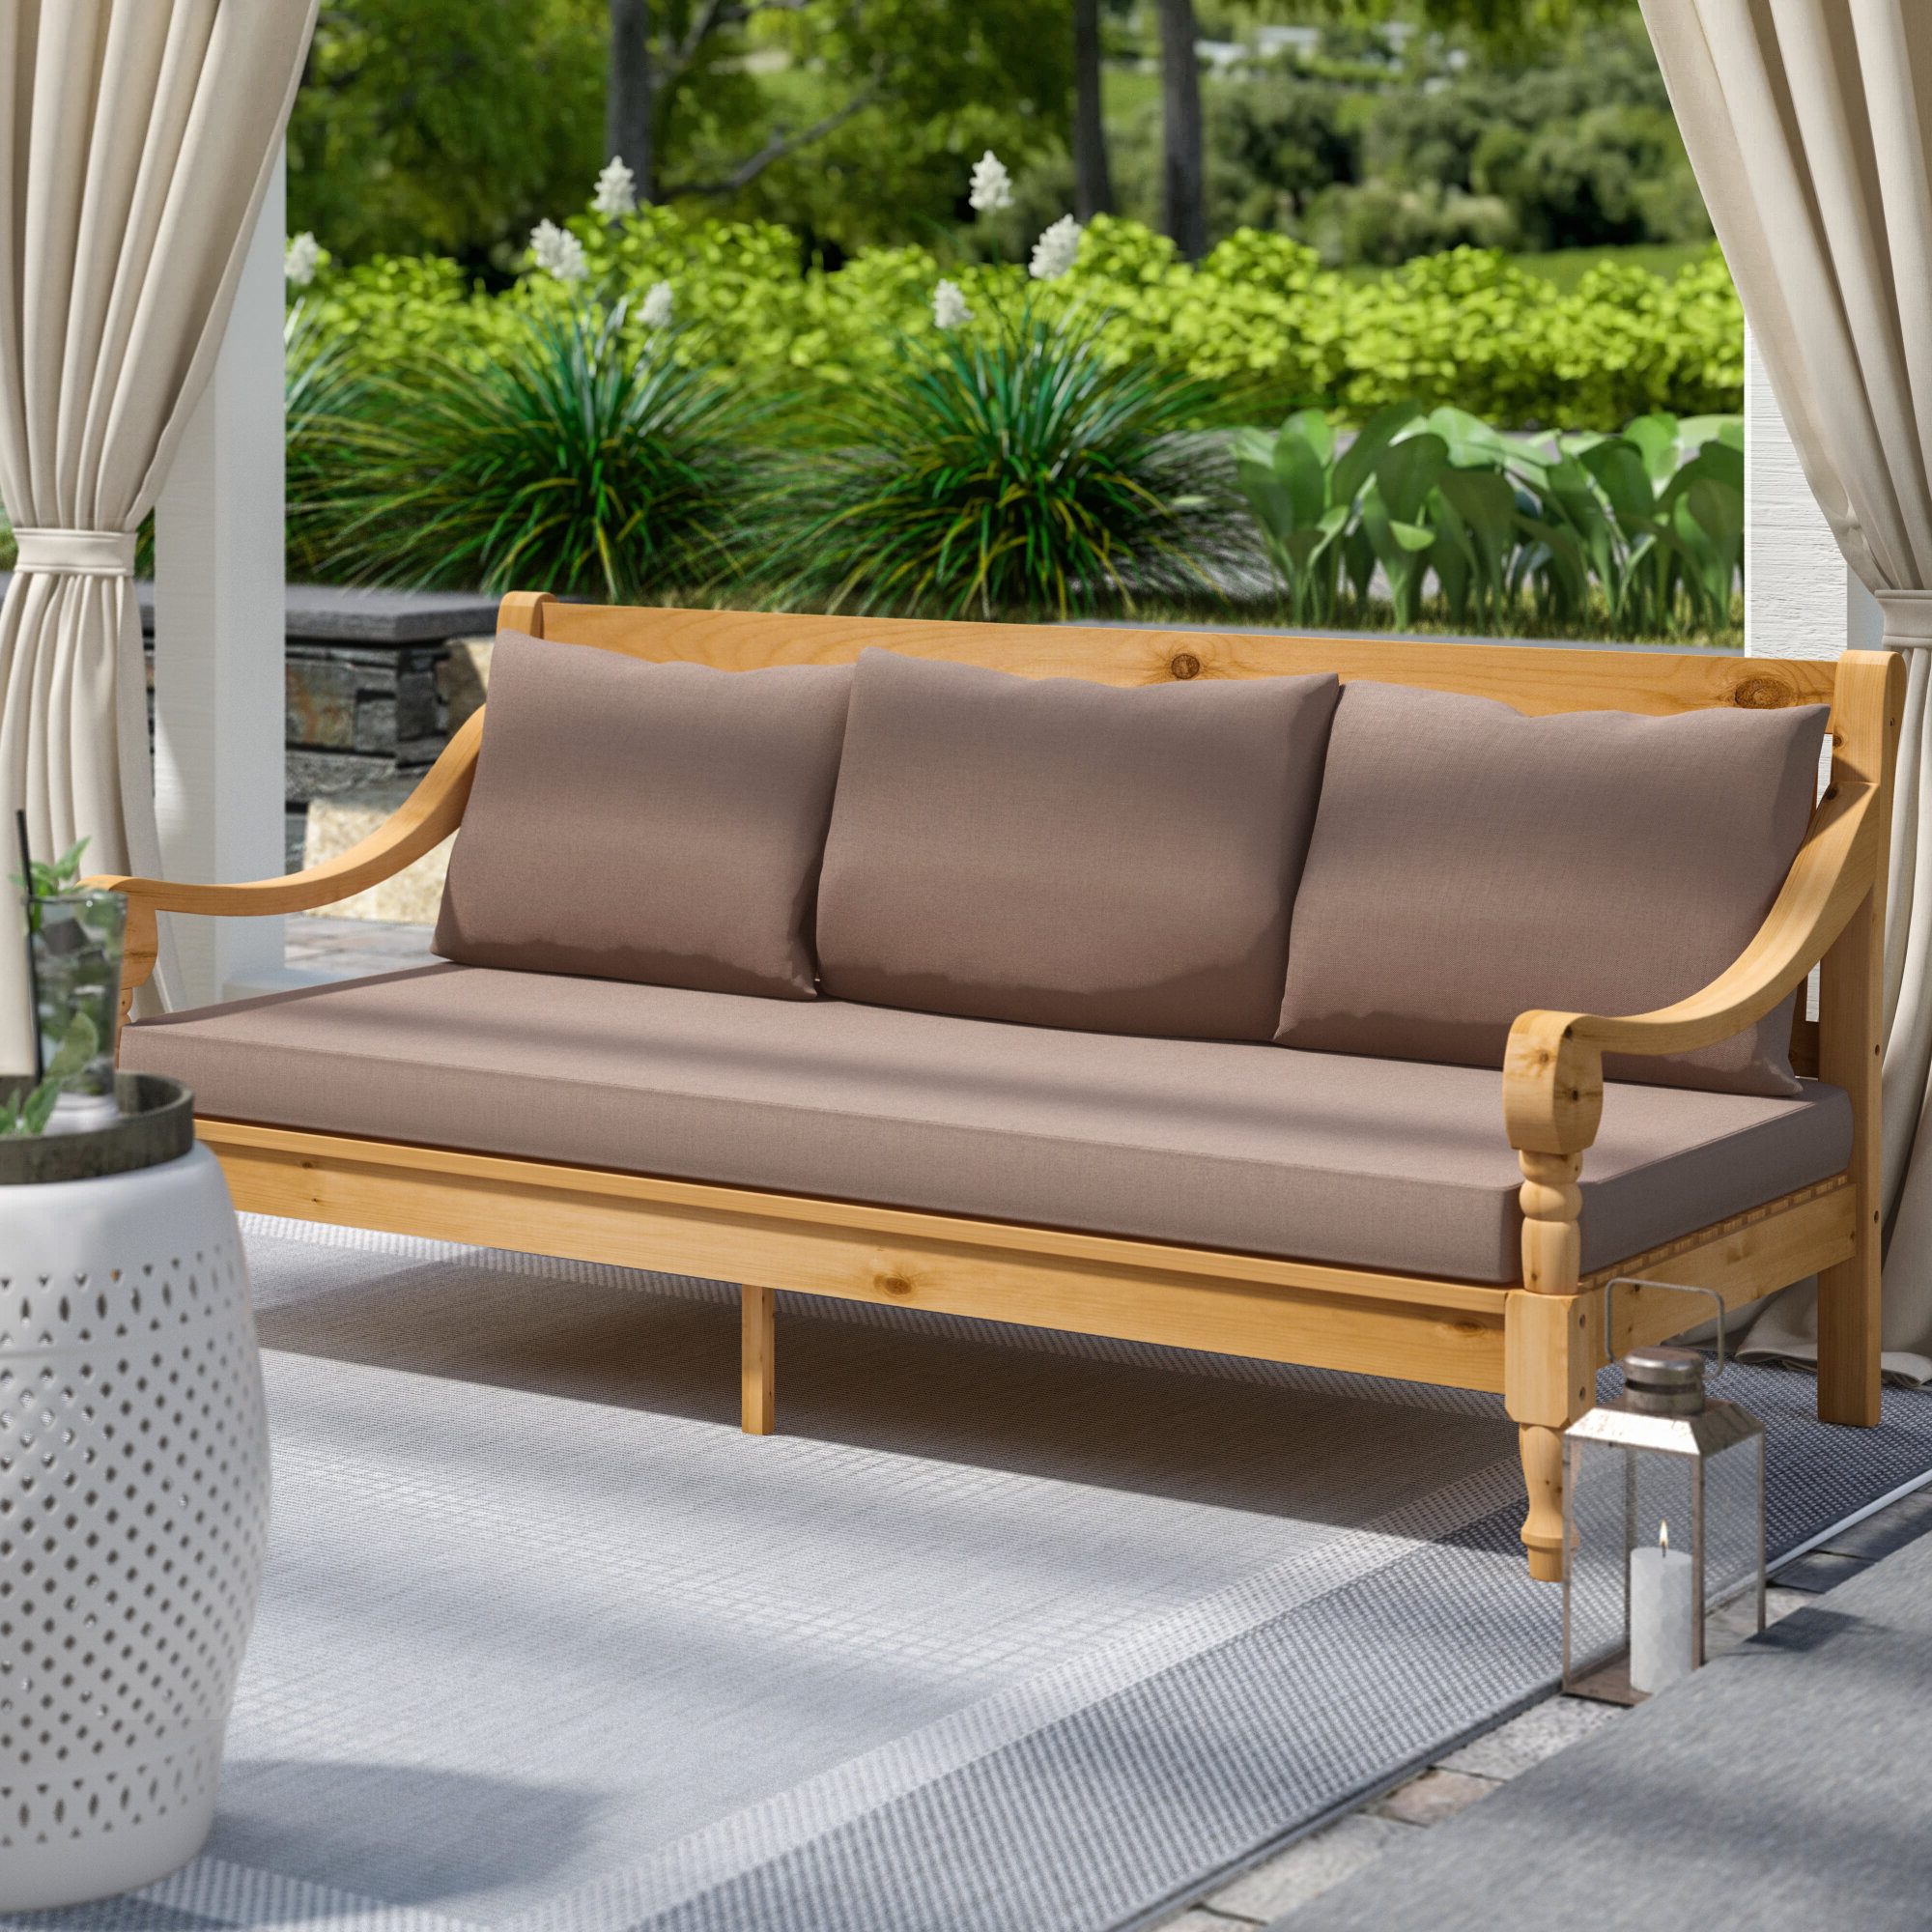 Clary Teak Lounge Patio Daybeds With Cushion Pertaining To Favorite Roush Teak Patio Daybed With Cushions (View 4 of 20)